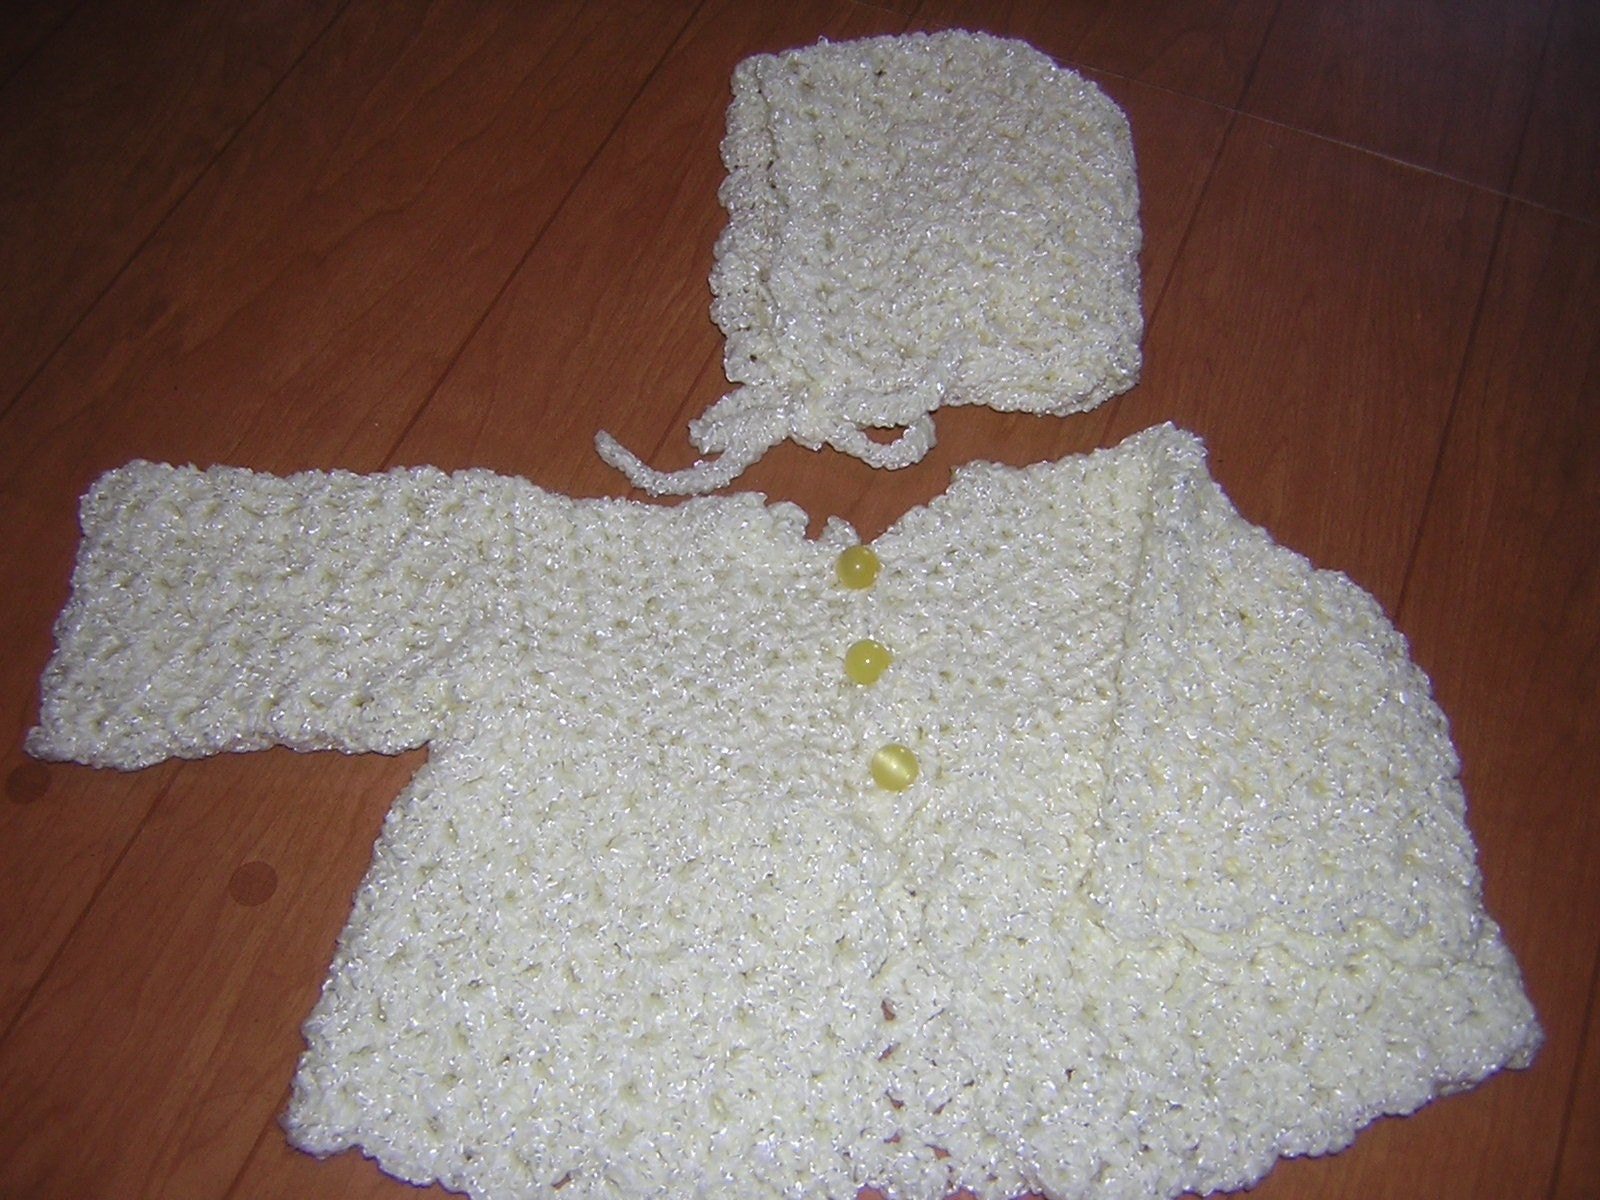 Crochet Baby Hat And Sweater Pattern : FREE EASY BABY SWEATER PATTERN FOR CROCHET ? Easy Crochet ...